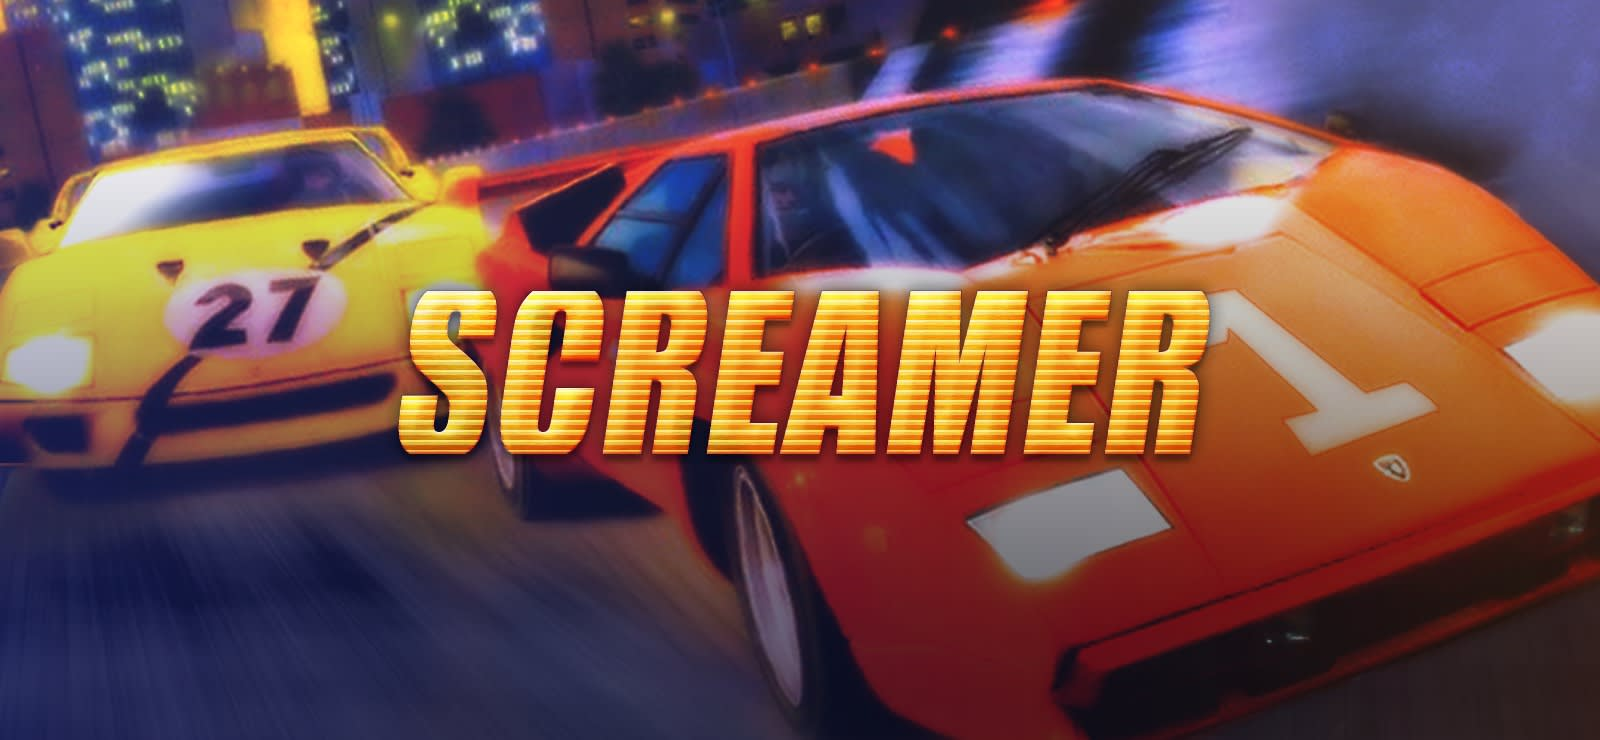 Screamer varies-with-device